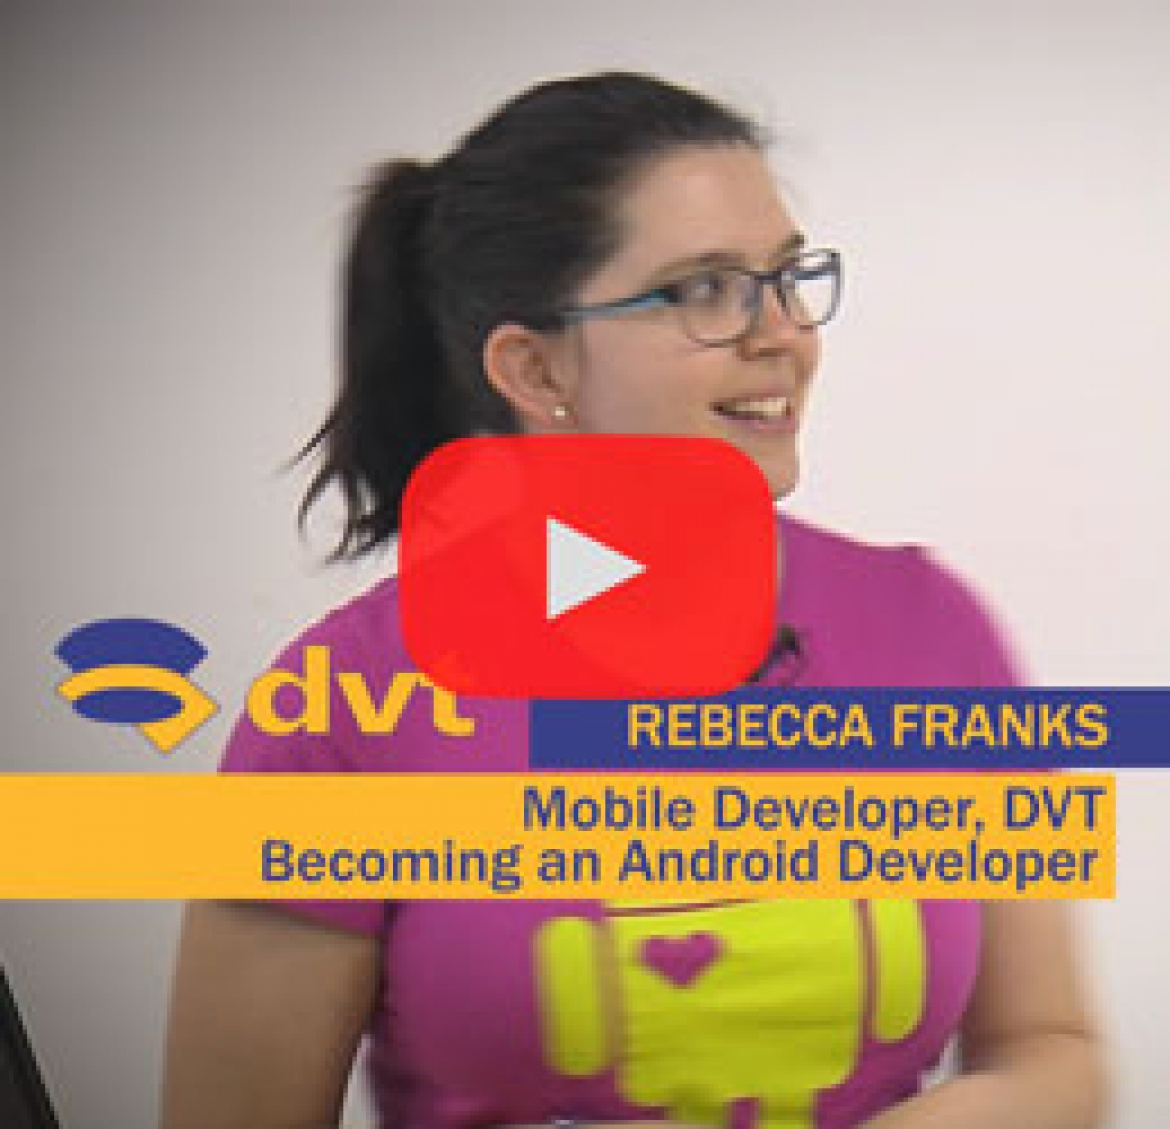 How to become an Android mobile developer